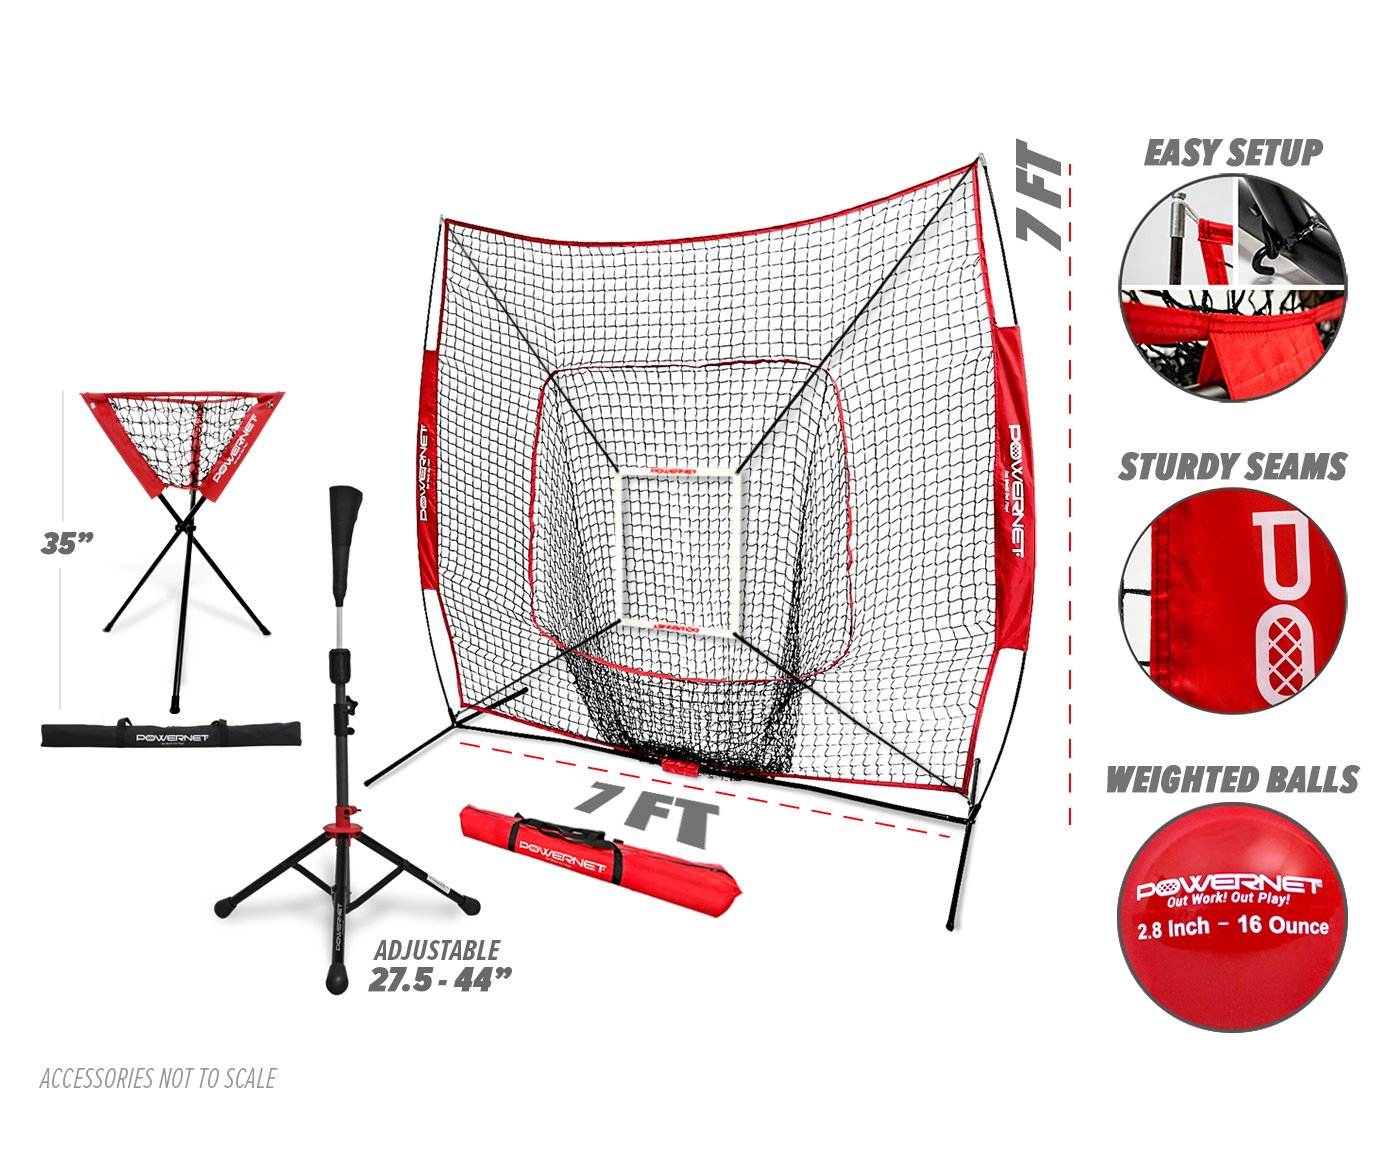 2981bfe28 ... at The Plate Weighted Training Ball Bundle Baseball Softball Pitching  Batting Coaching Pack Work on Pitch Accuracy PowerNet 5x5 Practice Net  Strike Zone ...